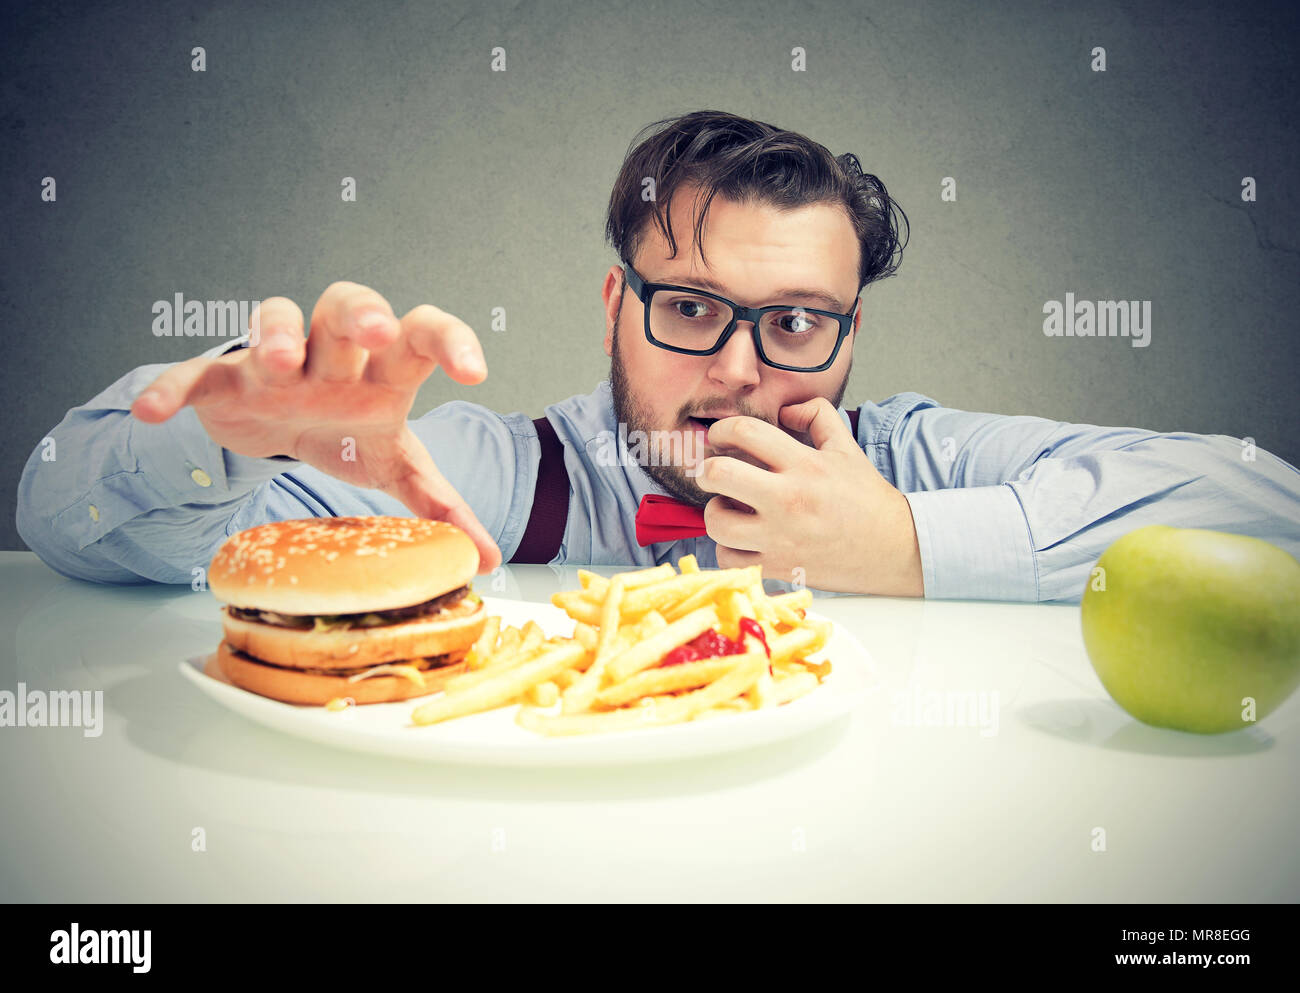 Young obese man in glasses having cravings for cheeseburger with fries instead of healthy green apple. - Stock Image